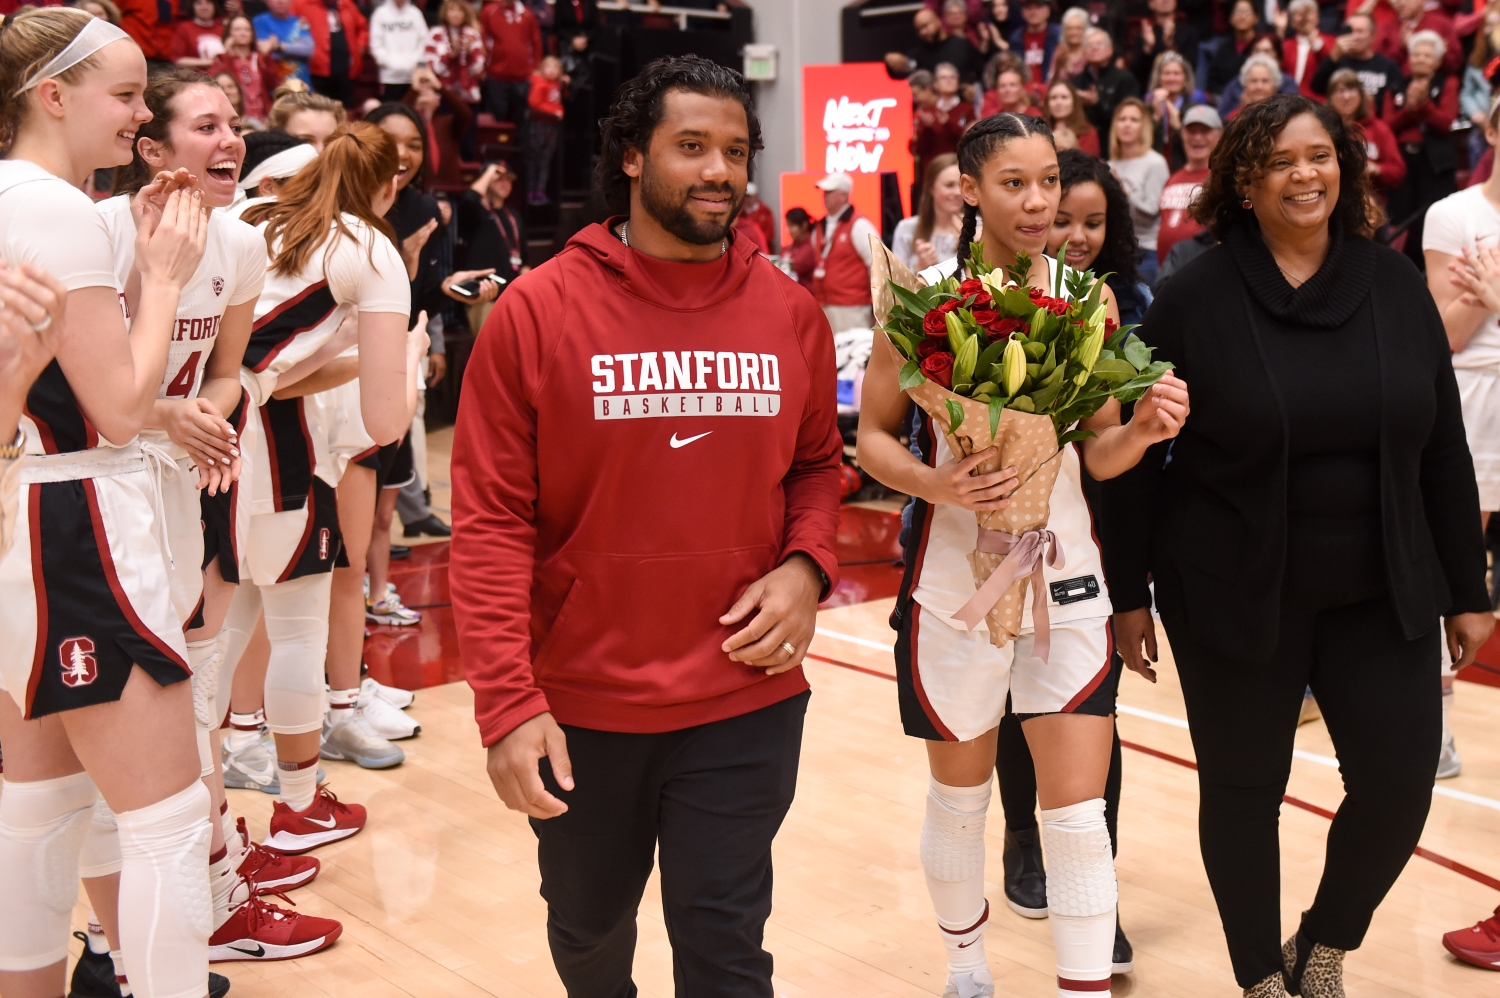 Seattle Seahawks quarterback Russell Wilson walks next to his sister, Anna Wilson, and their mother, Tammy Wilson, to celebrate senior day at Stanford.